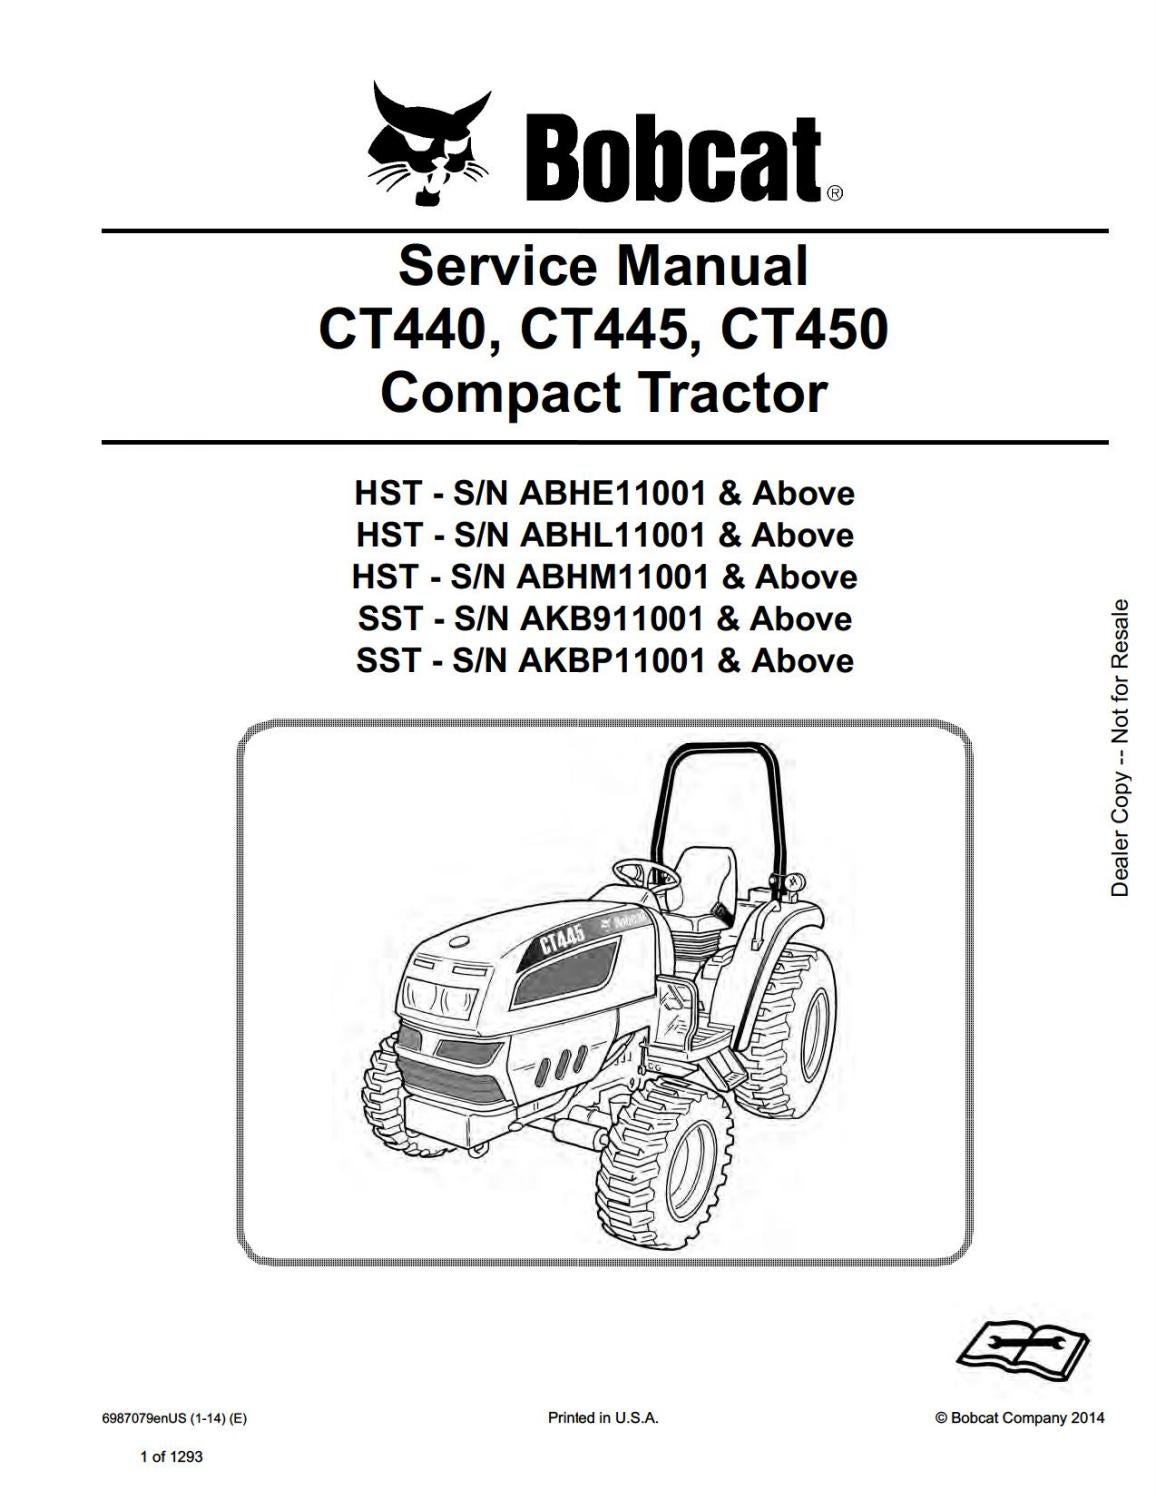 BOBCAT CT440, CT445, CT450 COMPACT TRACTOR Service Repair Manual SN  ABHM11001 AND Above by 1634368 - issuu